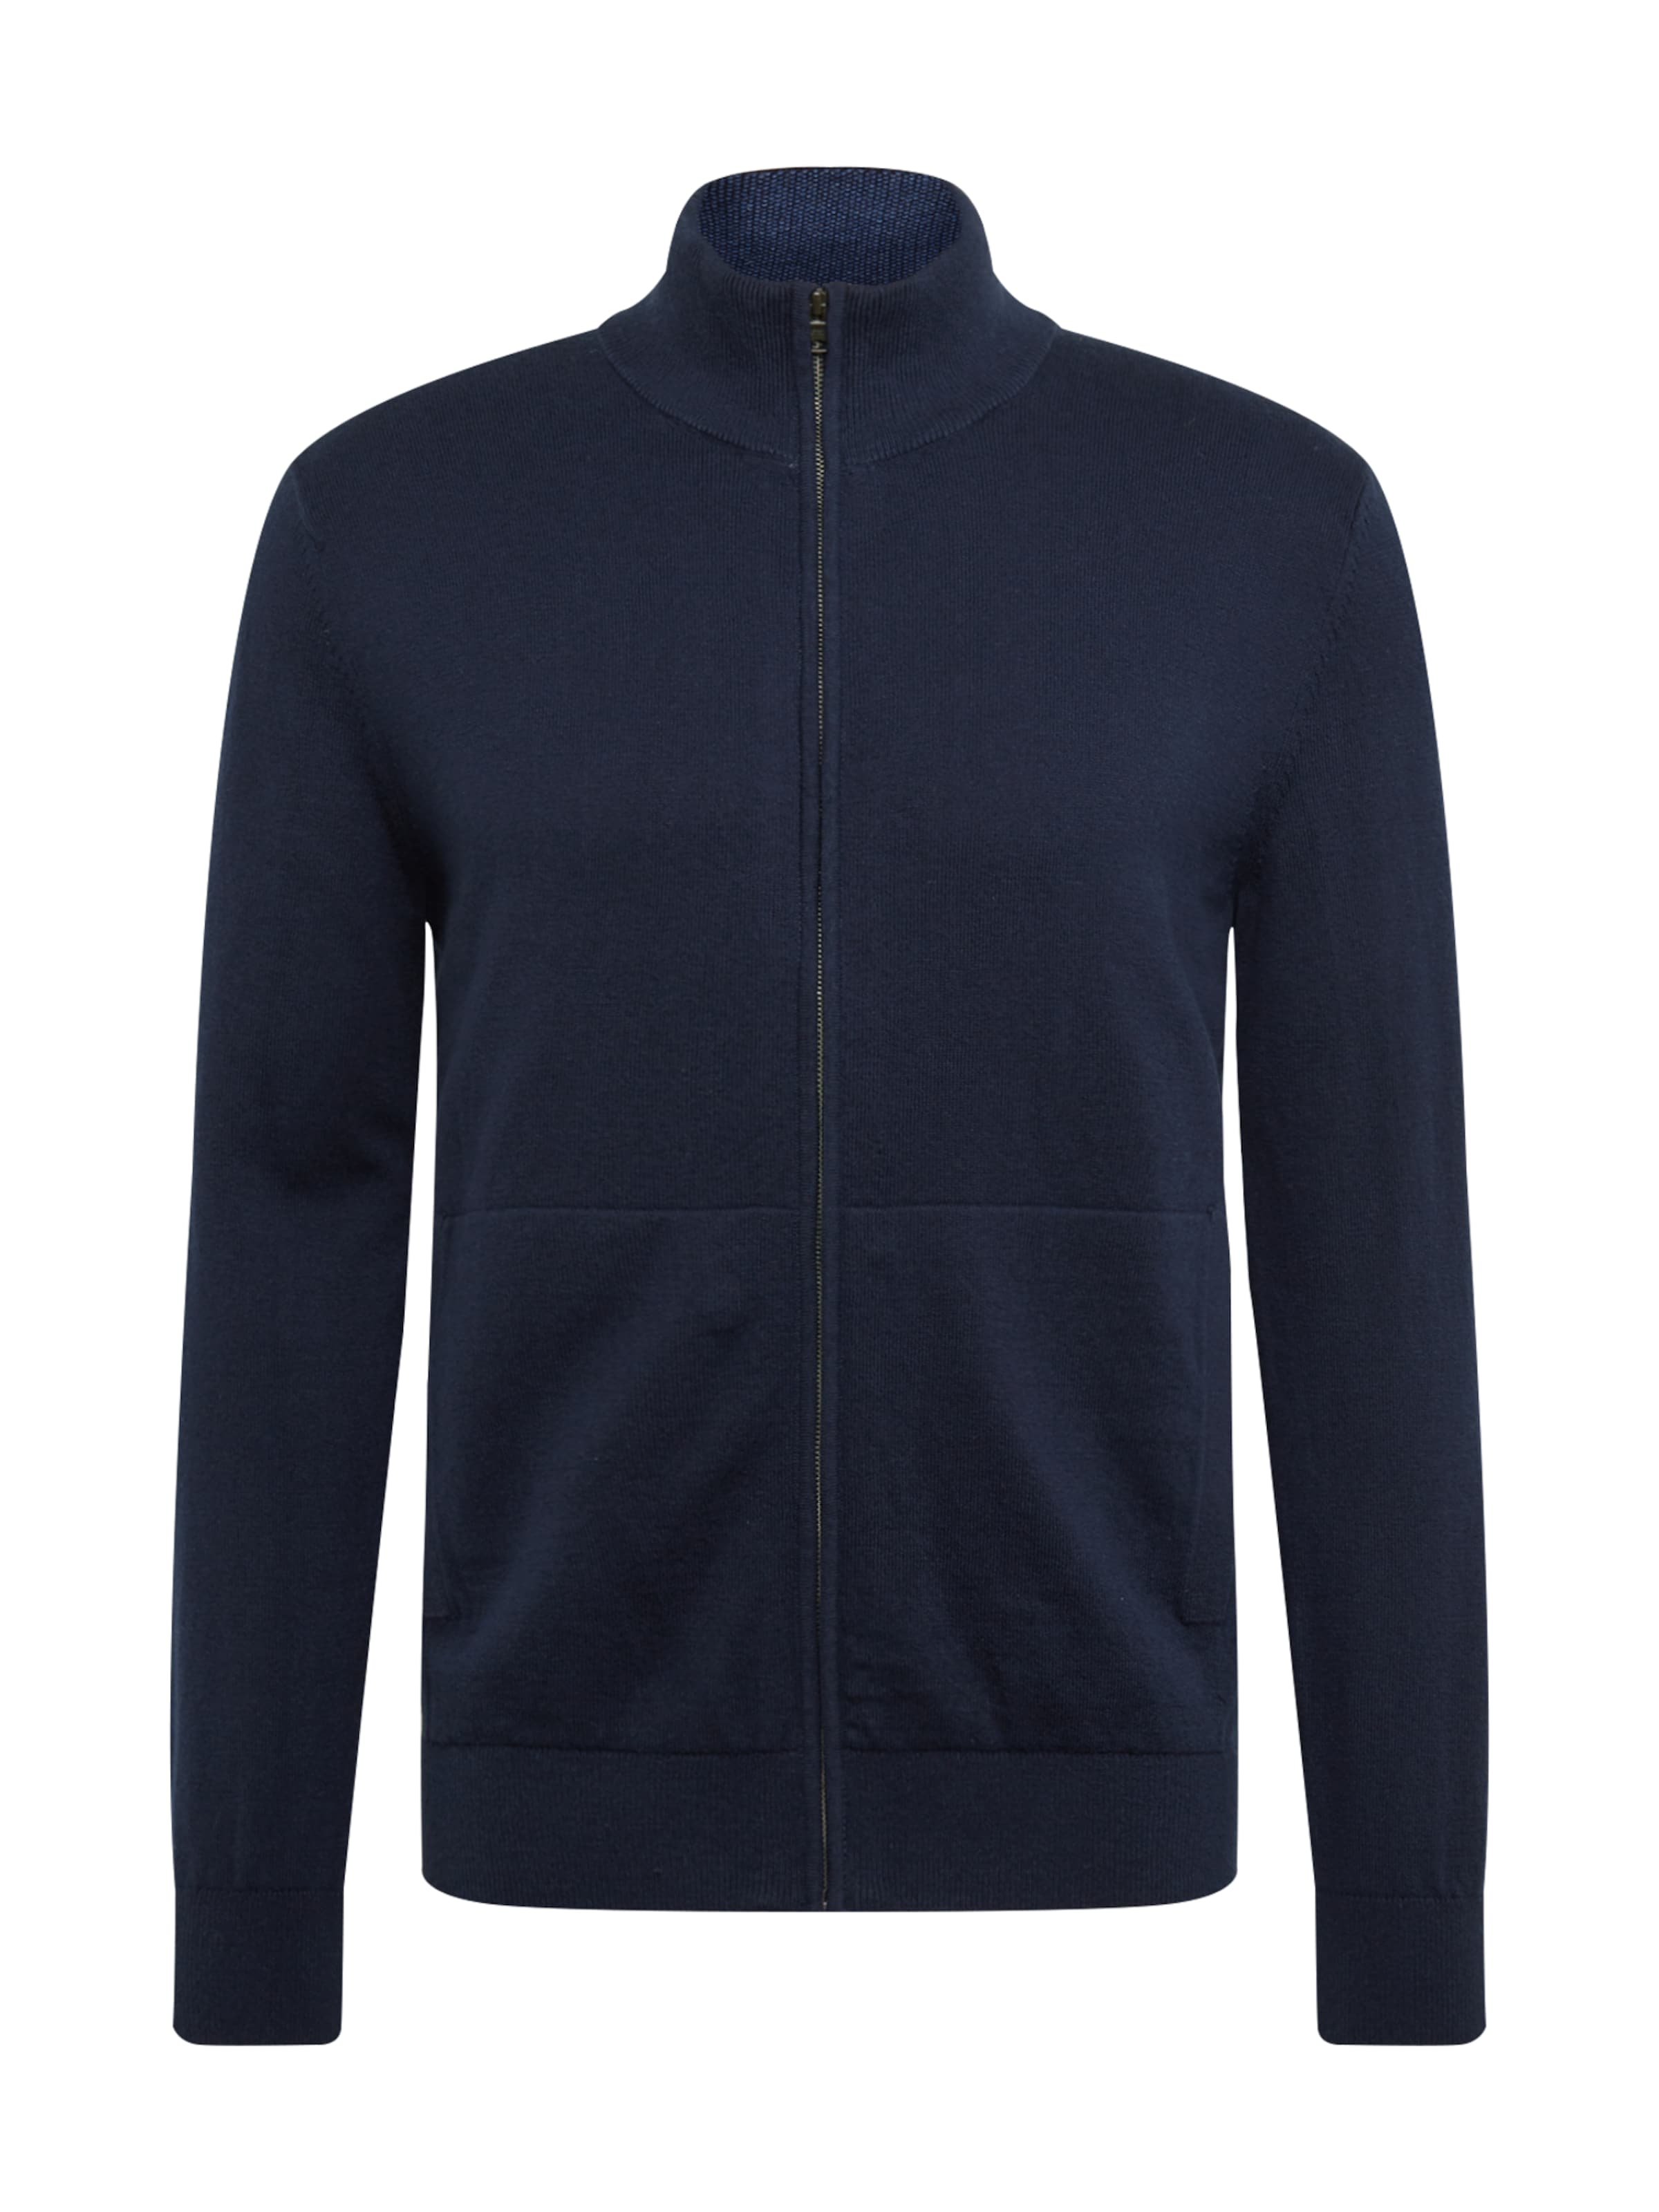 Zip' 'pcc Navy Full Tipped Republic Strickjacke In Banana vNwn0mO8